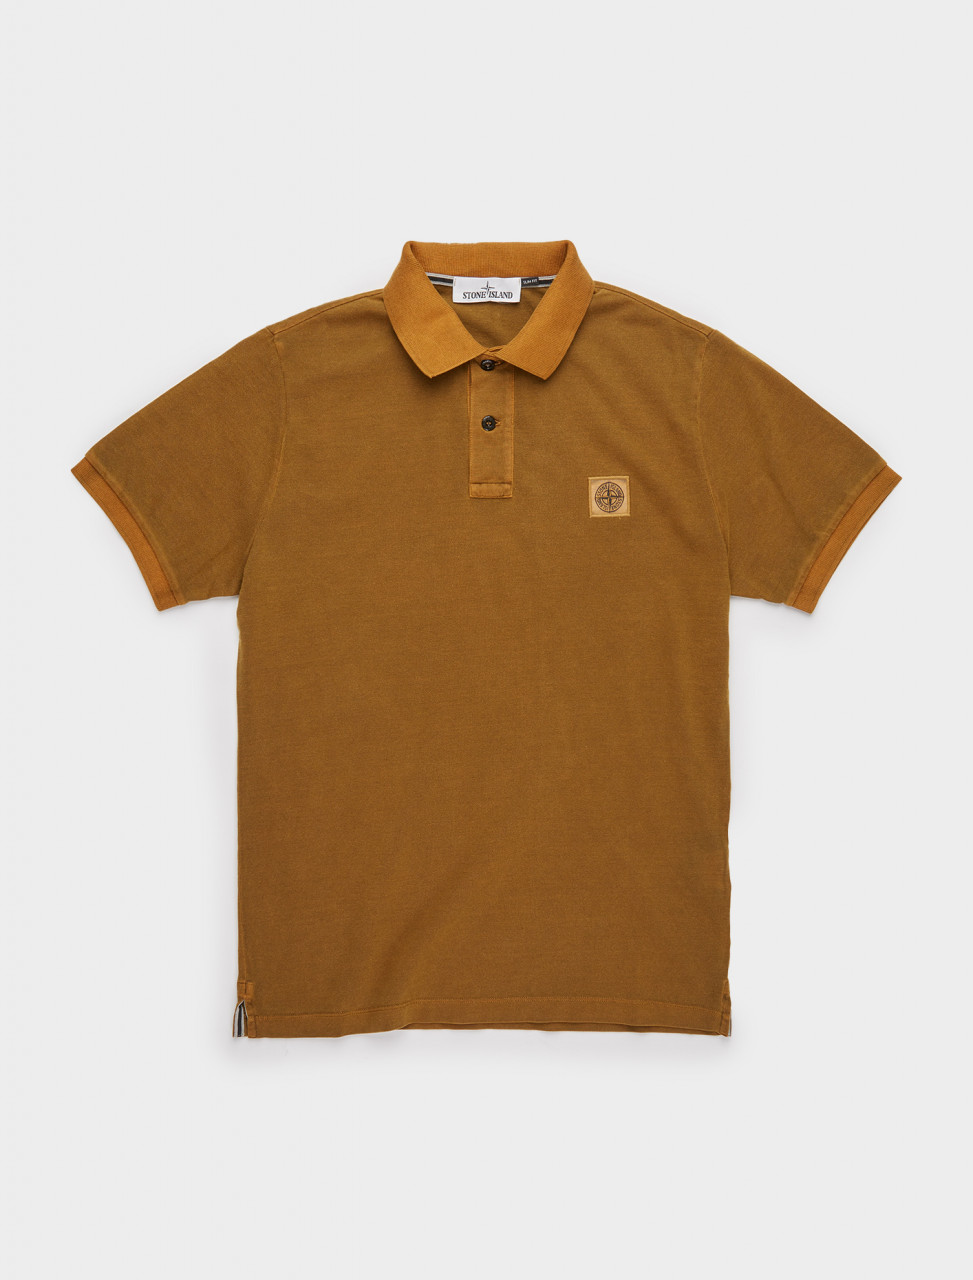 241-MO731522S67-V0071 STONE ISLAND POLO SHIRT IN TOBACCO